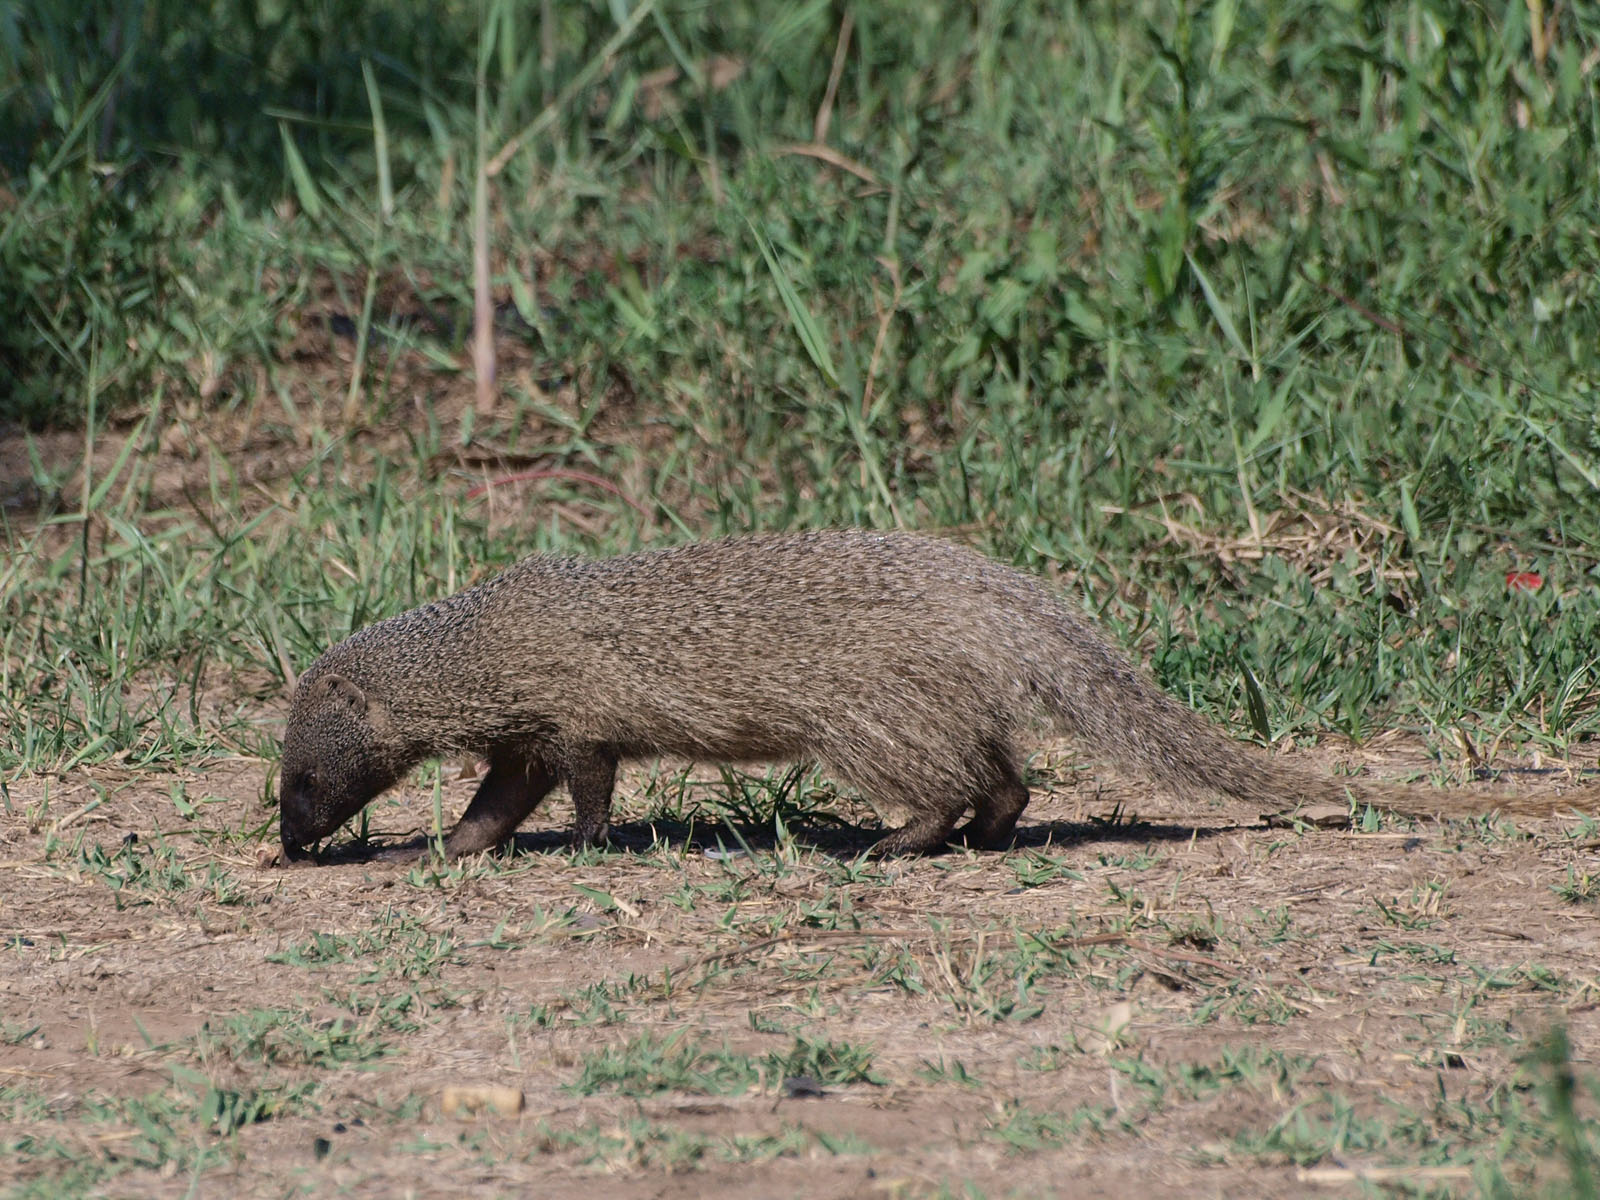 https://upload.wikimedia.org/wikipedia/commons/b/b0/Egyptian_mongoose_-_Herpestes_ichneumon_-_near_Alexander_Stream%2C_Israel.JPG